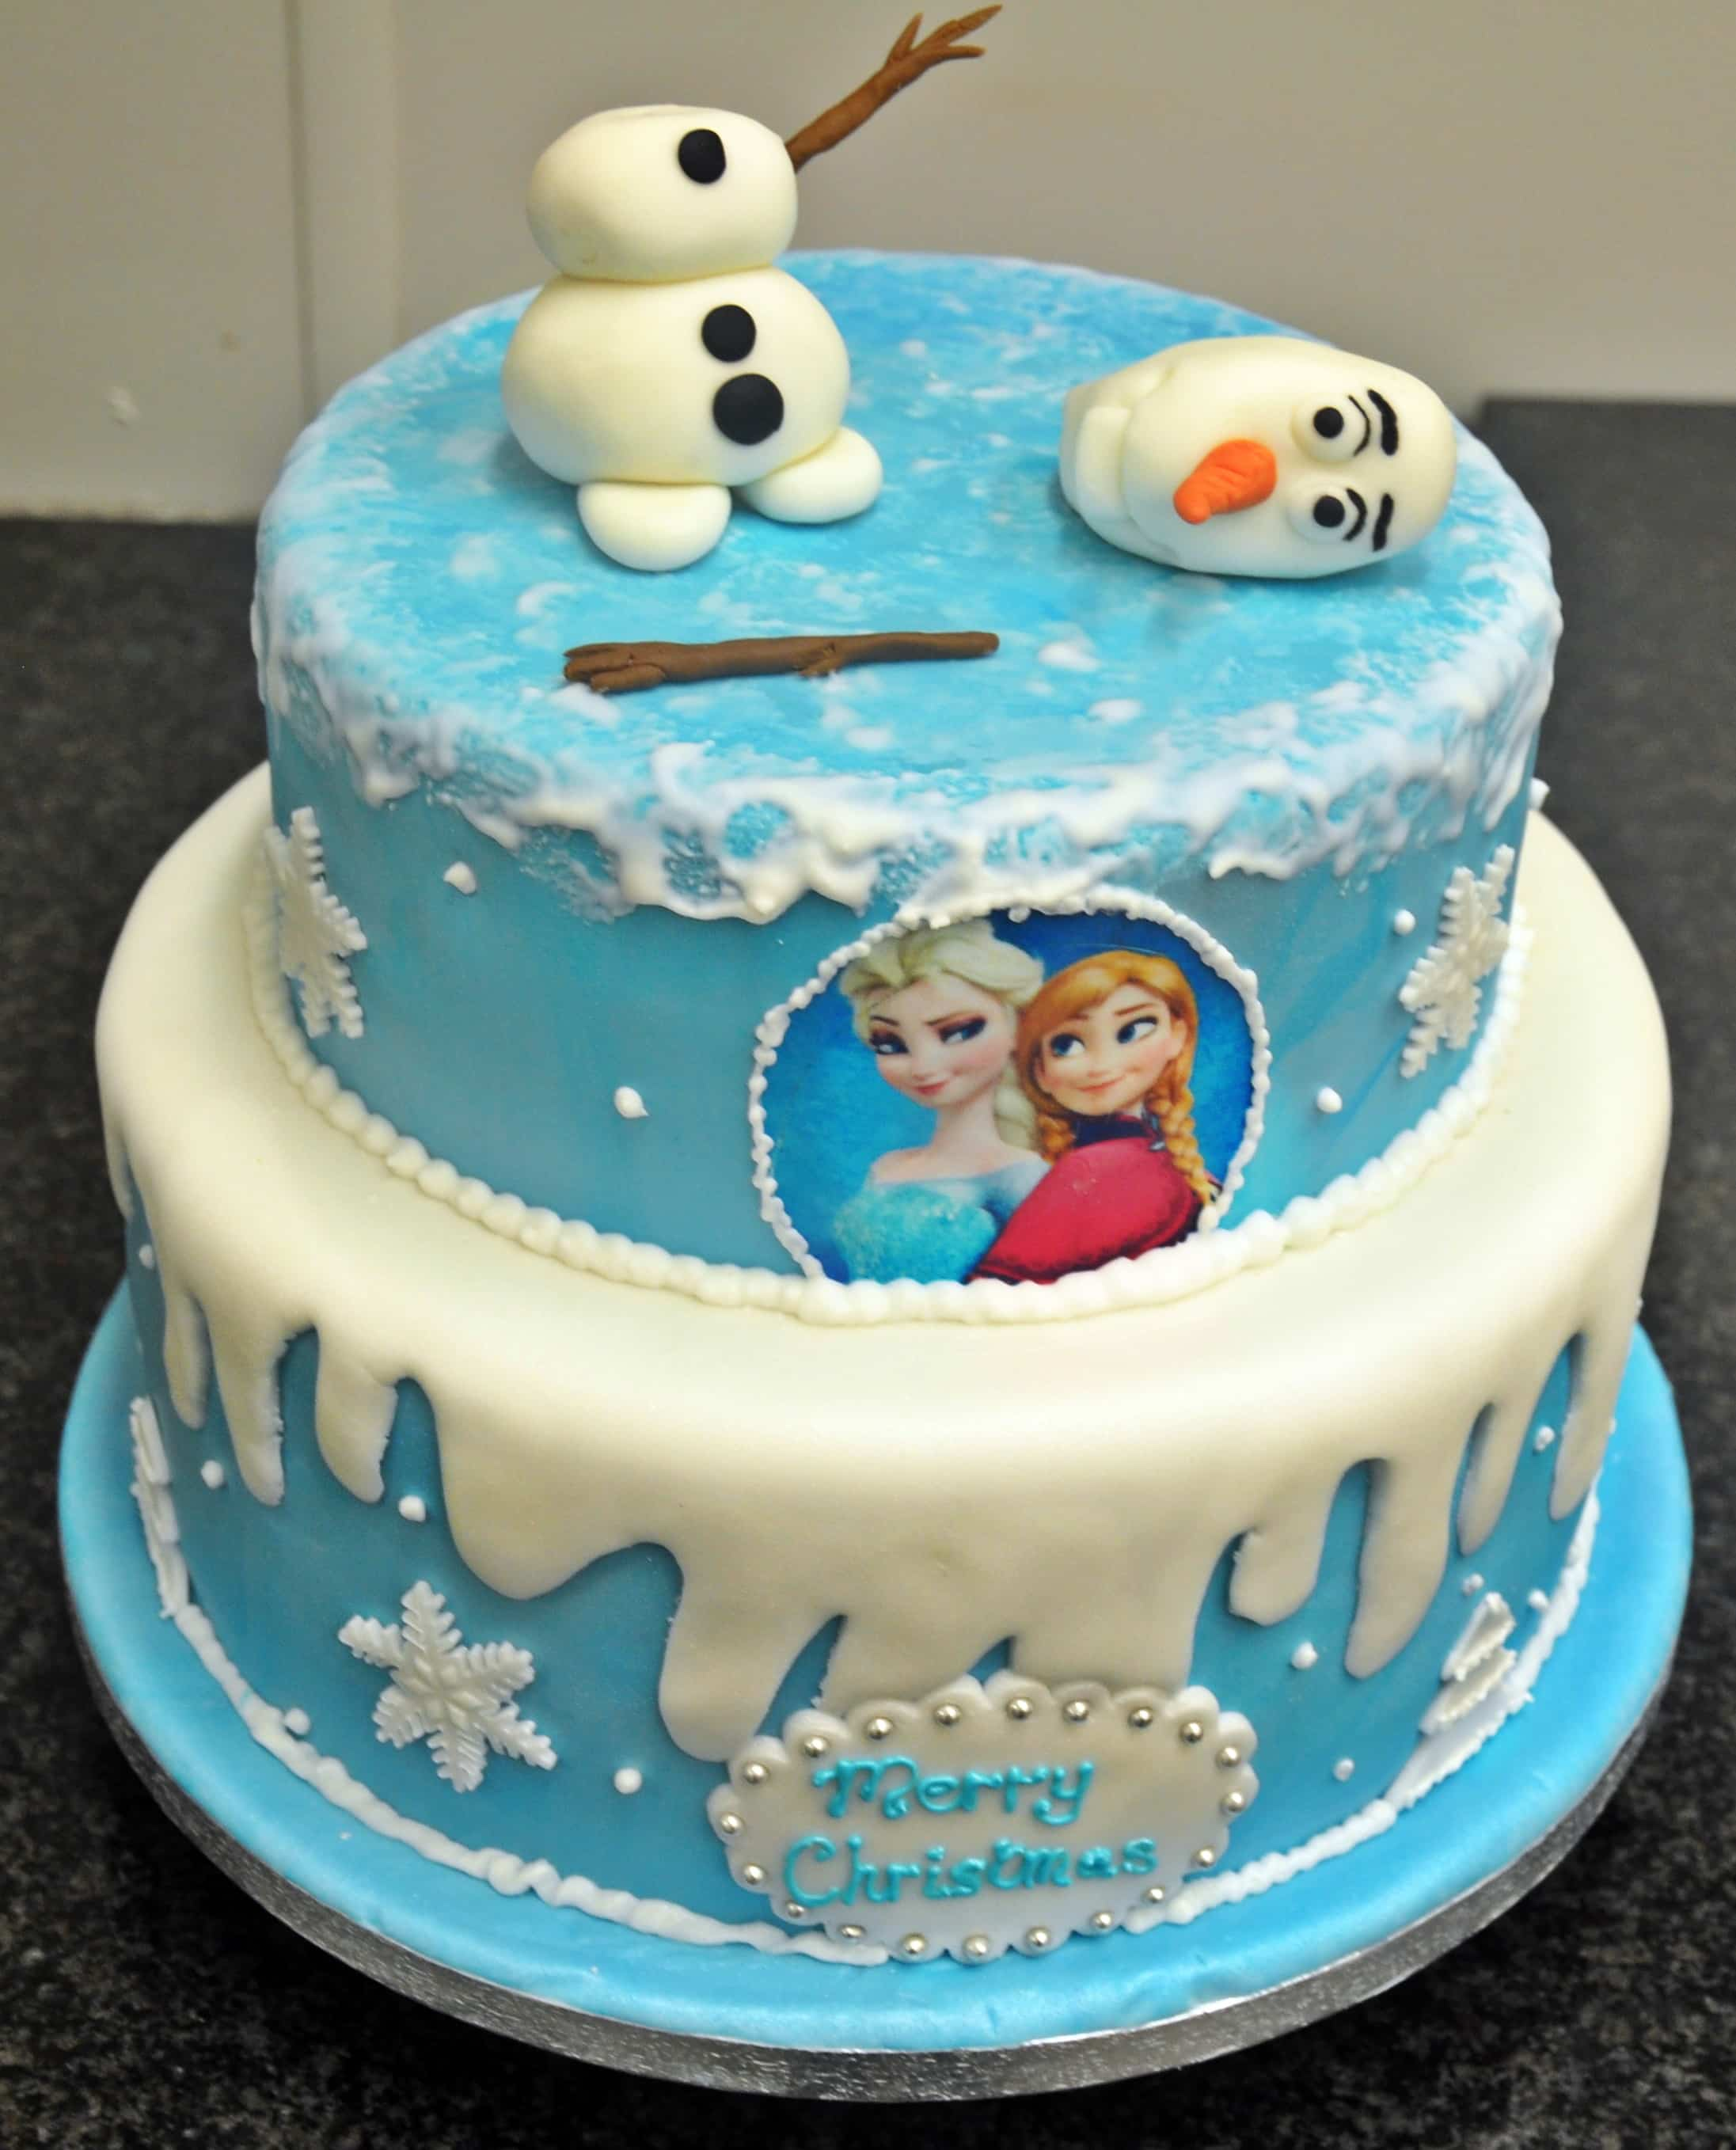 17 Best images about Cartoon Character Cakes on Pinterest